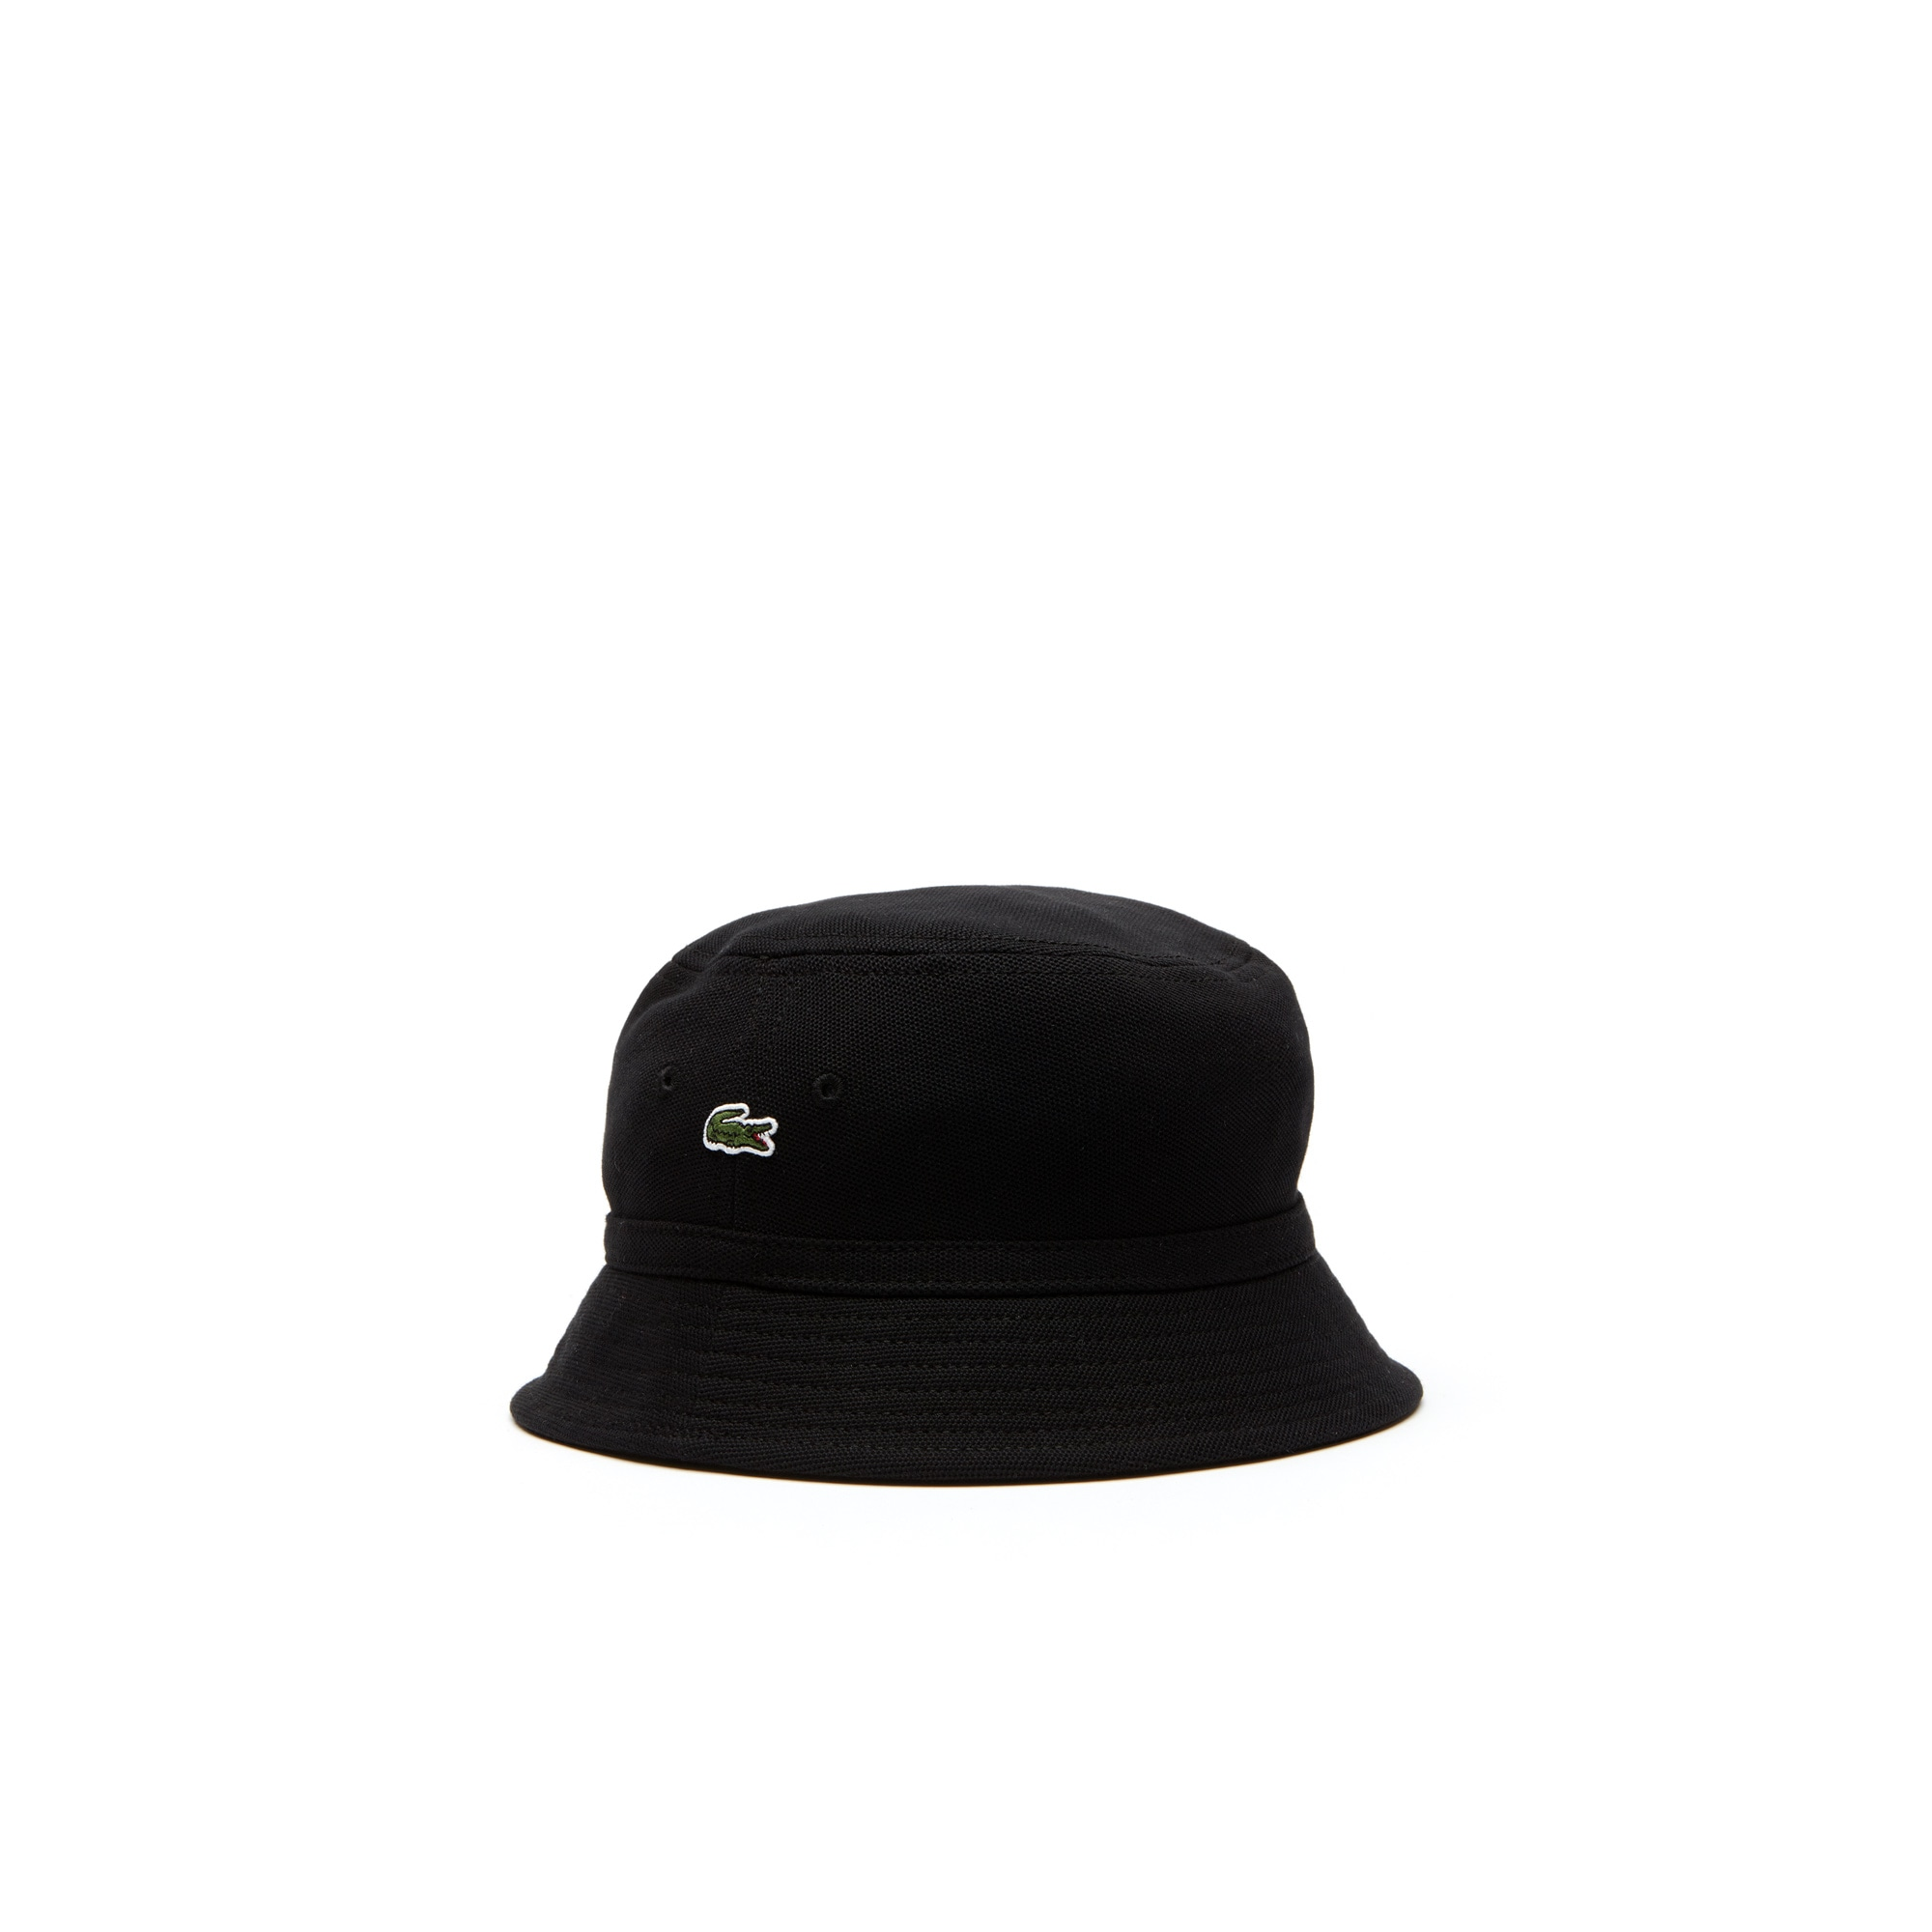 01a00d83531 Men s Cotton piqué bucket hat